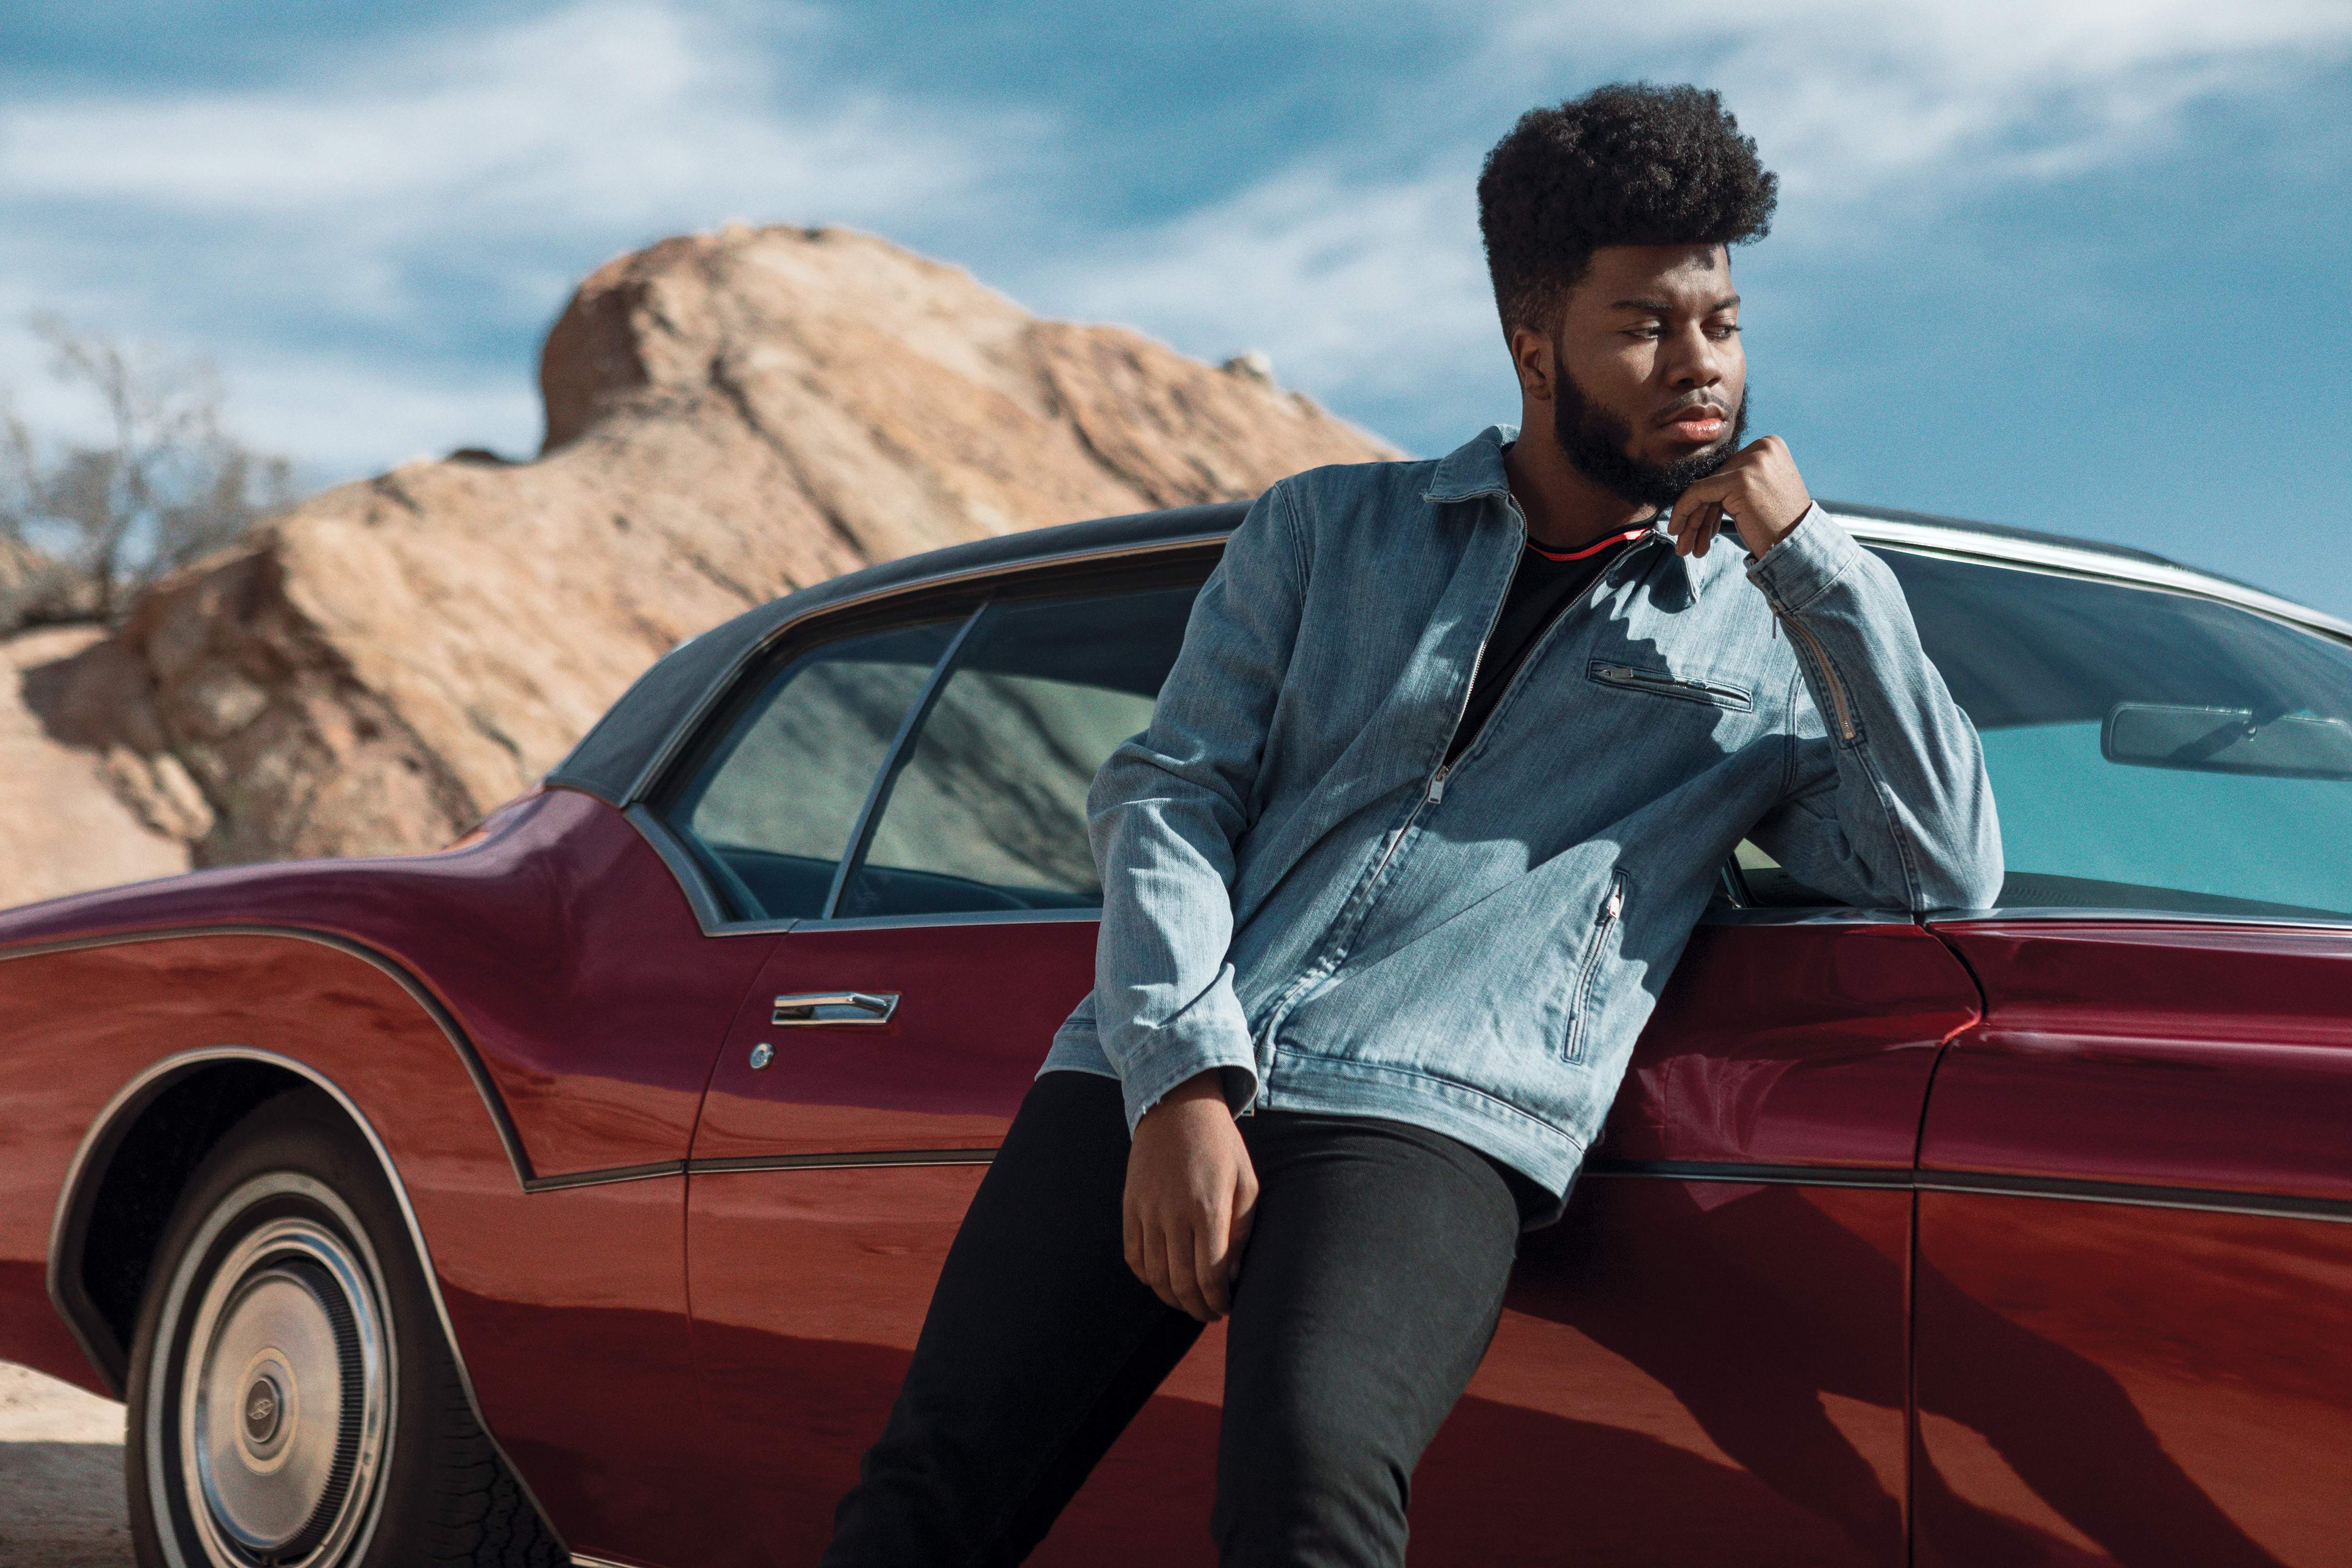 Khalid Hd Music 4k Wallpapers Images Backgrounds Photos